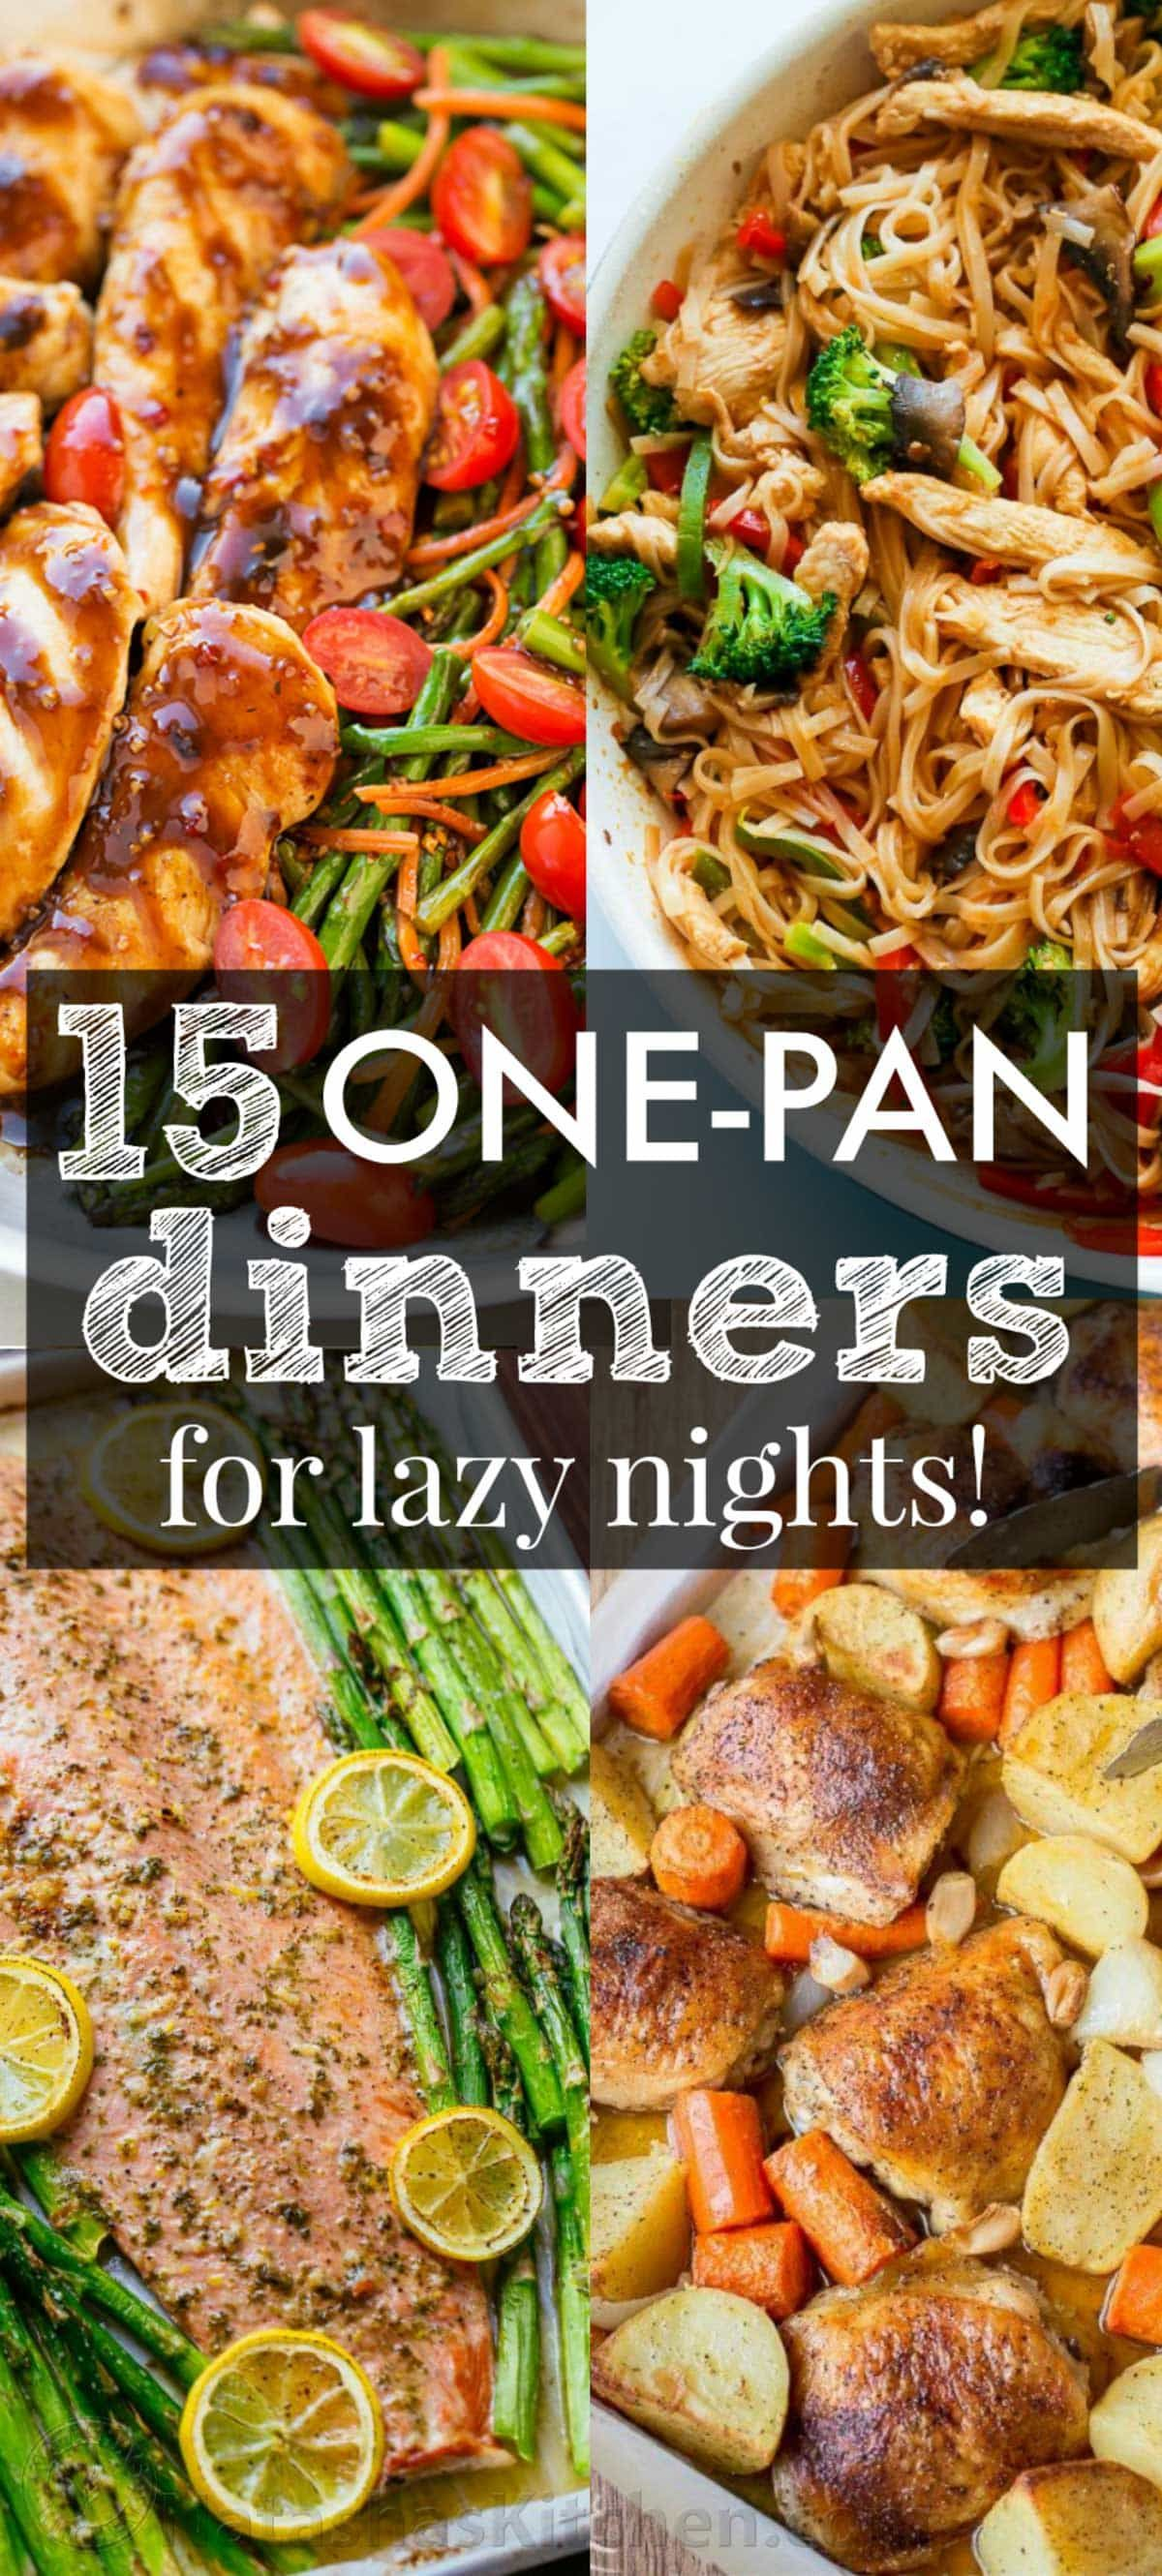 Discussion on this topic: 15 Healthy And Delicious 30-Minute Meal Recipes, 15-healthy-and-delicious-30-minute-meal-recipes/